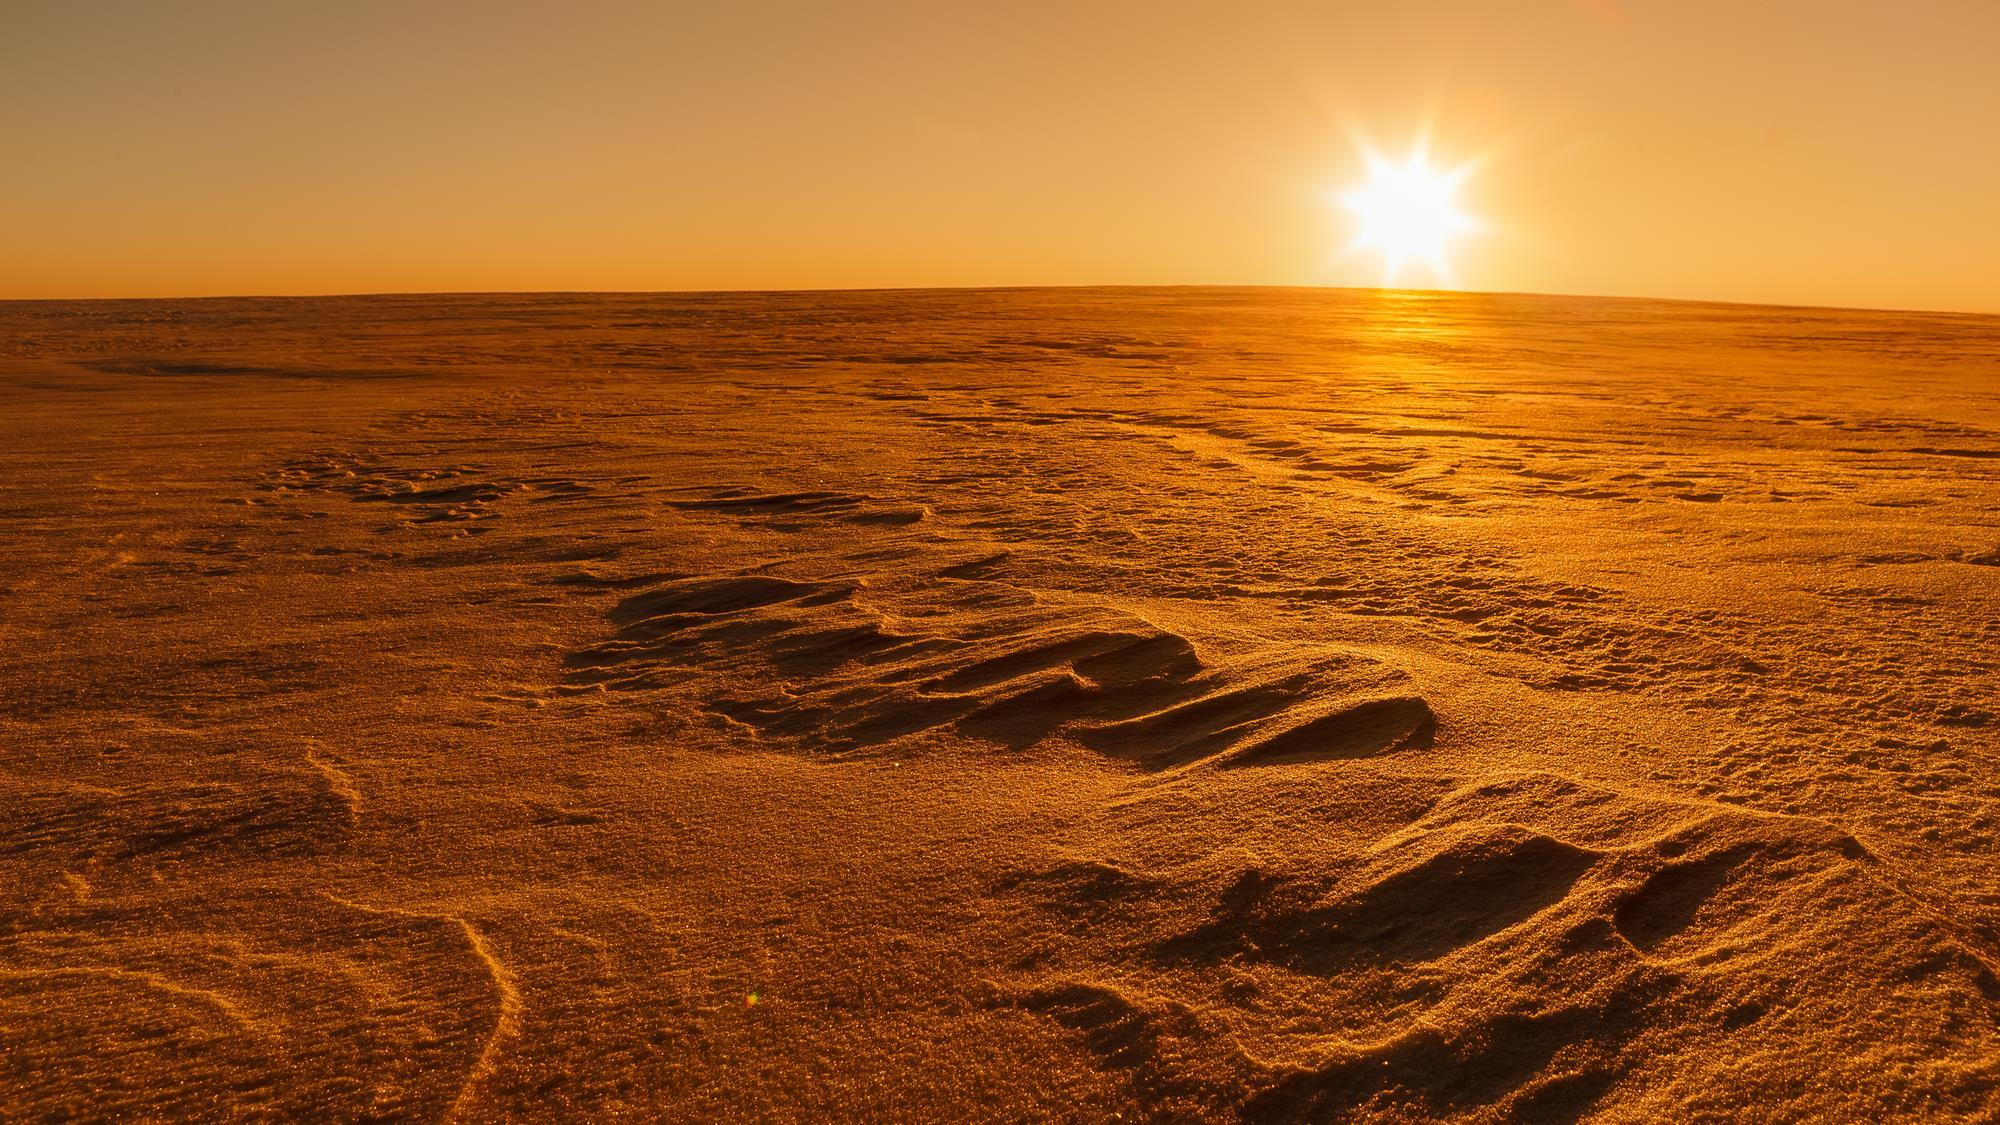 Mars' Subsurface Has Ingredients To Support Life